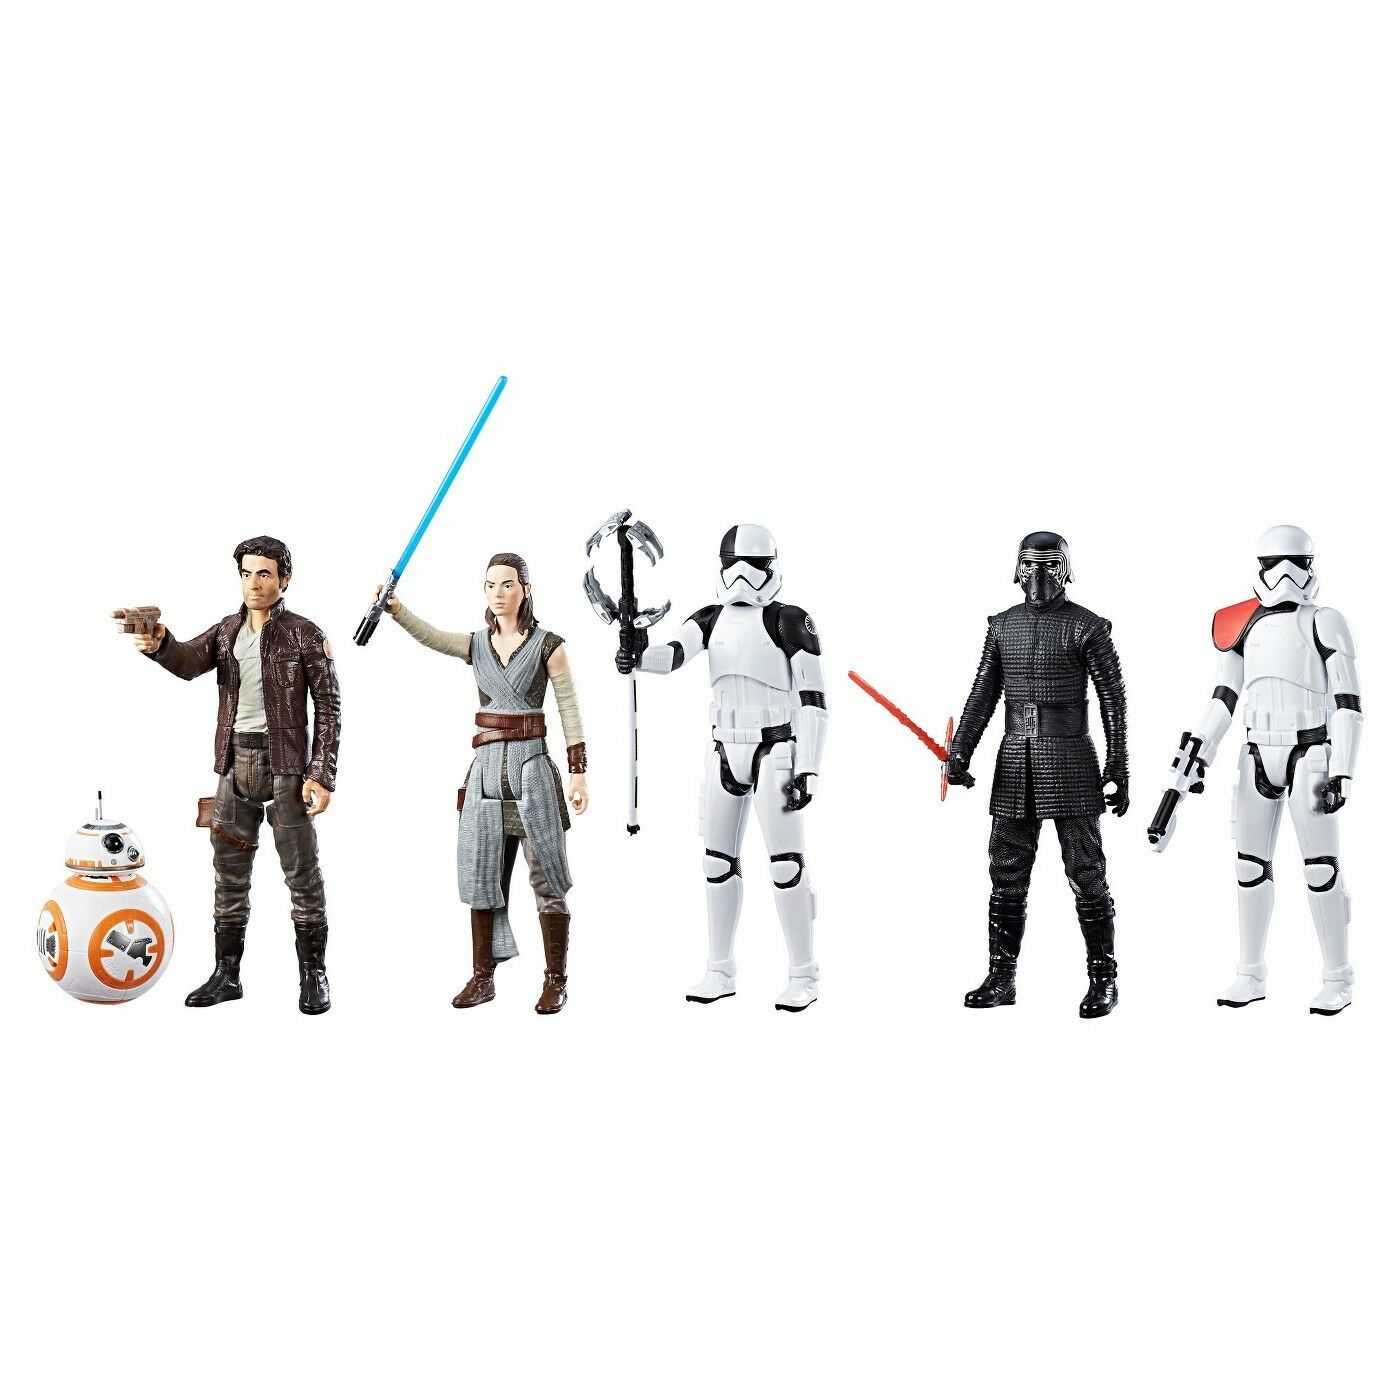 Star Wars: The Last Jedi Figures 12